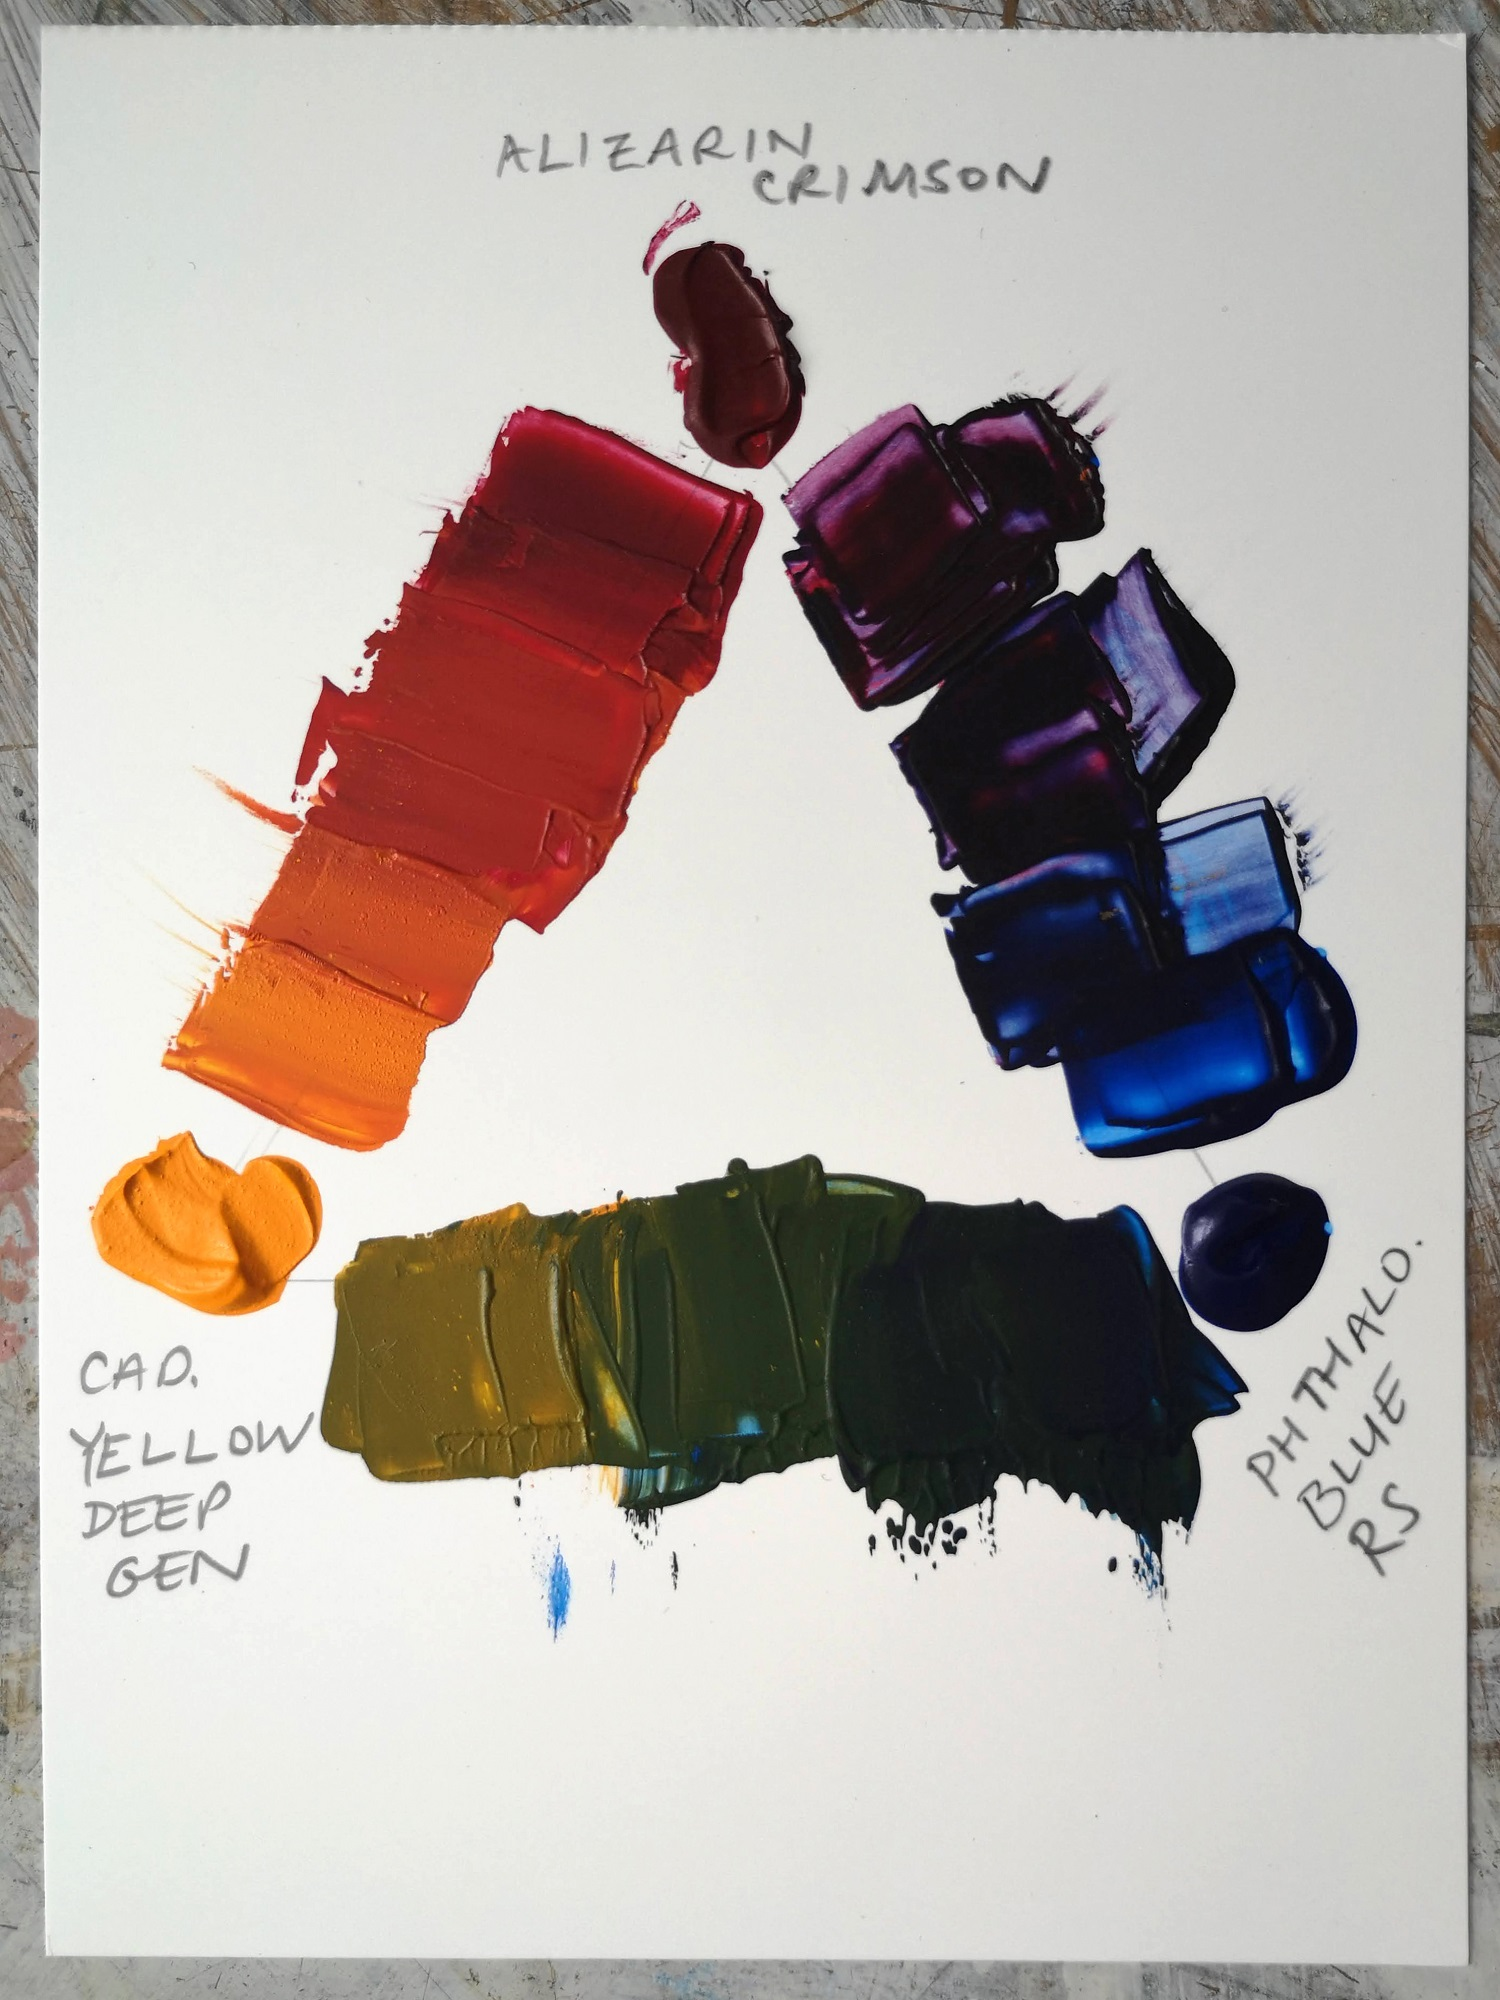 Colour mixing with Alizarin Crimson, Phthalo Blue Red Shade and Cadmium Yellow Deep Genuine